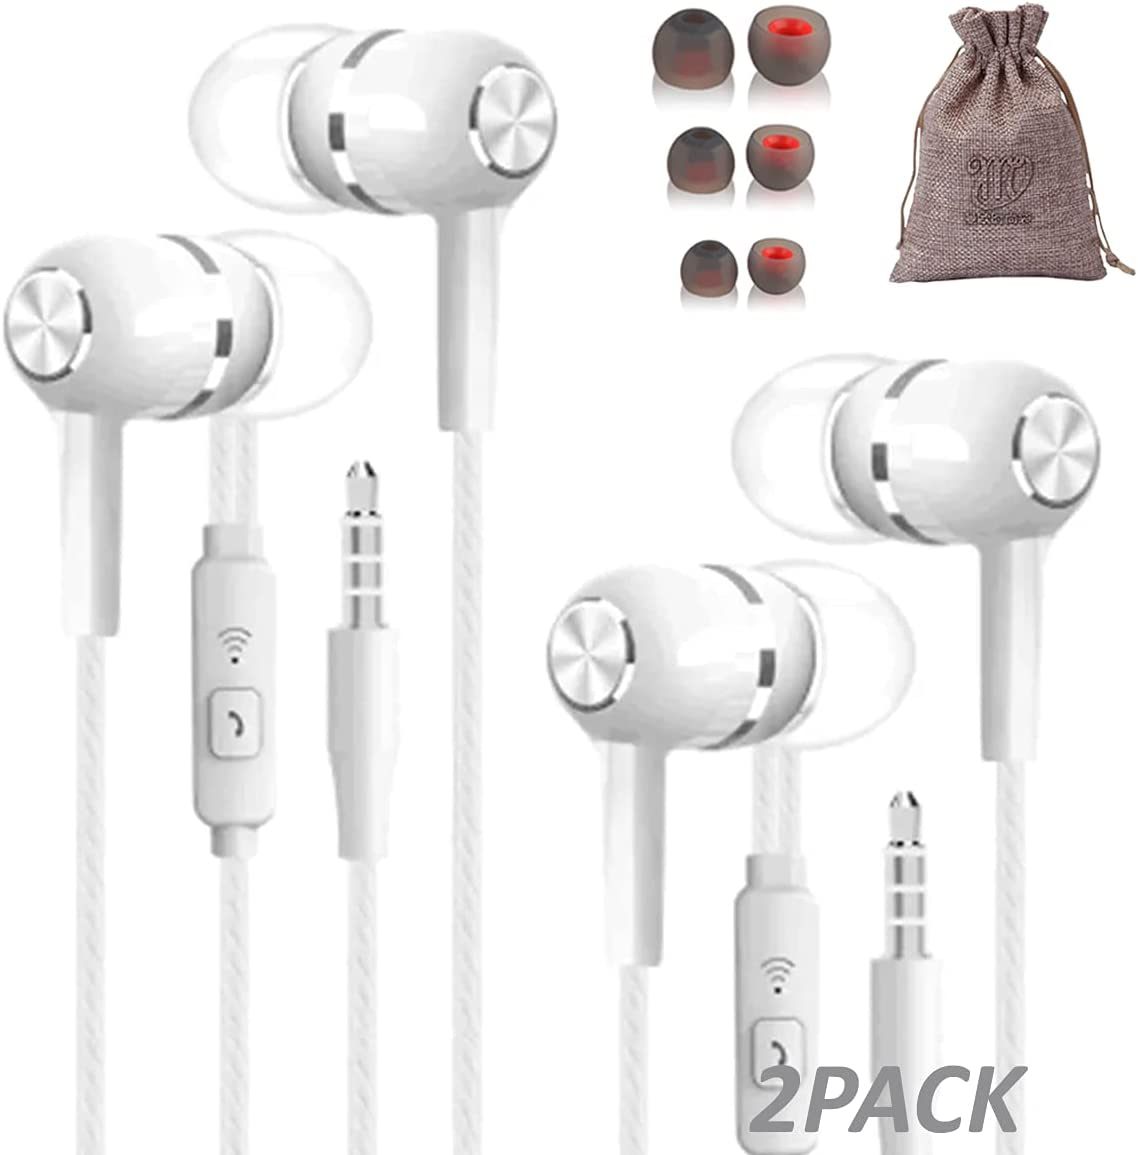 2 Pack White Wired Headphones Noise Cancelling Earbuds with mic in Ear Buds Best for iPhone Android Mobile Phones with Microphone 3.5mm Plug Cell Phone Set Bulk kopfhörer mit mikrofon dell Laptop